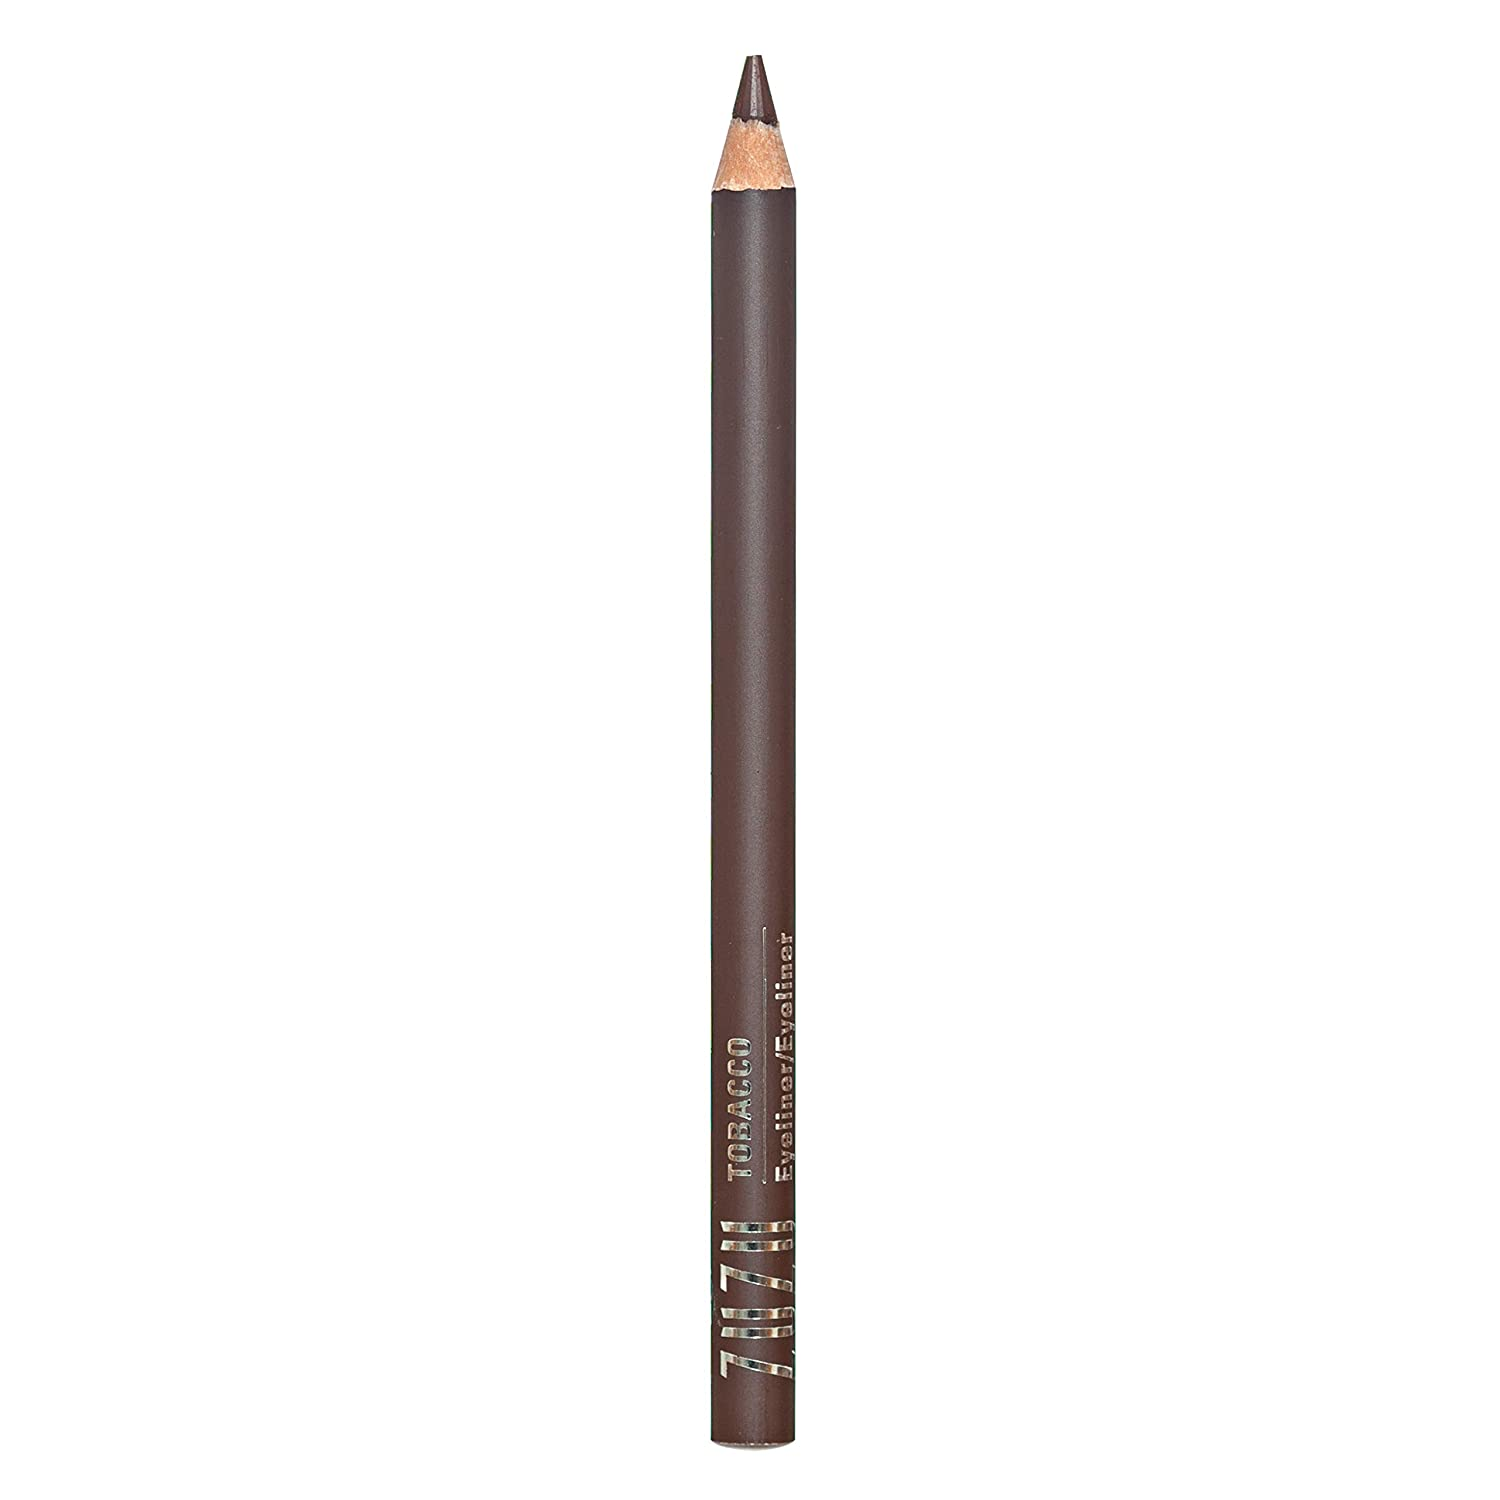 Zuzu Luxe Eyeliner (Tobacco),0.04 oz,Eye Defining Pencil, Infused with Jojoba Seed Oil, Super Smooth formula glides on to define eyes.Natural, Paraben Free, Vegan, Gluten-free, Cruelty- free,Non GMO.